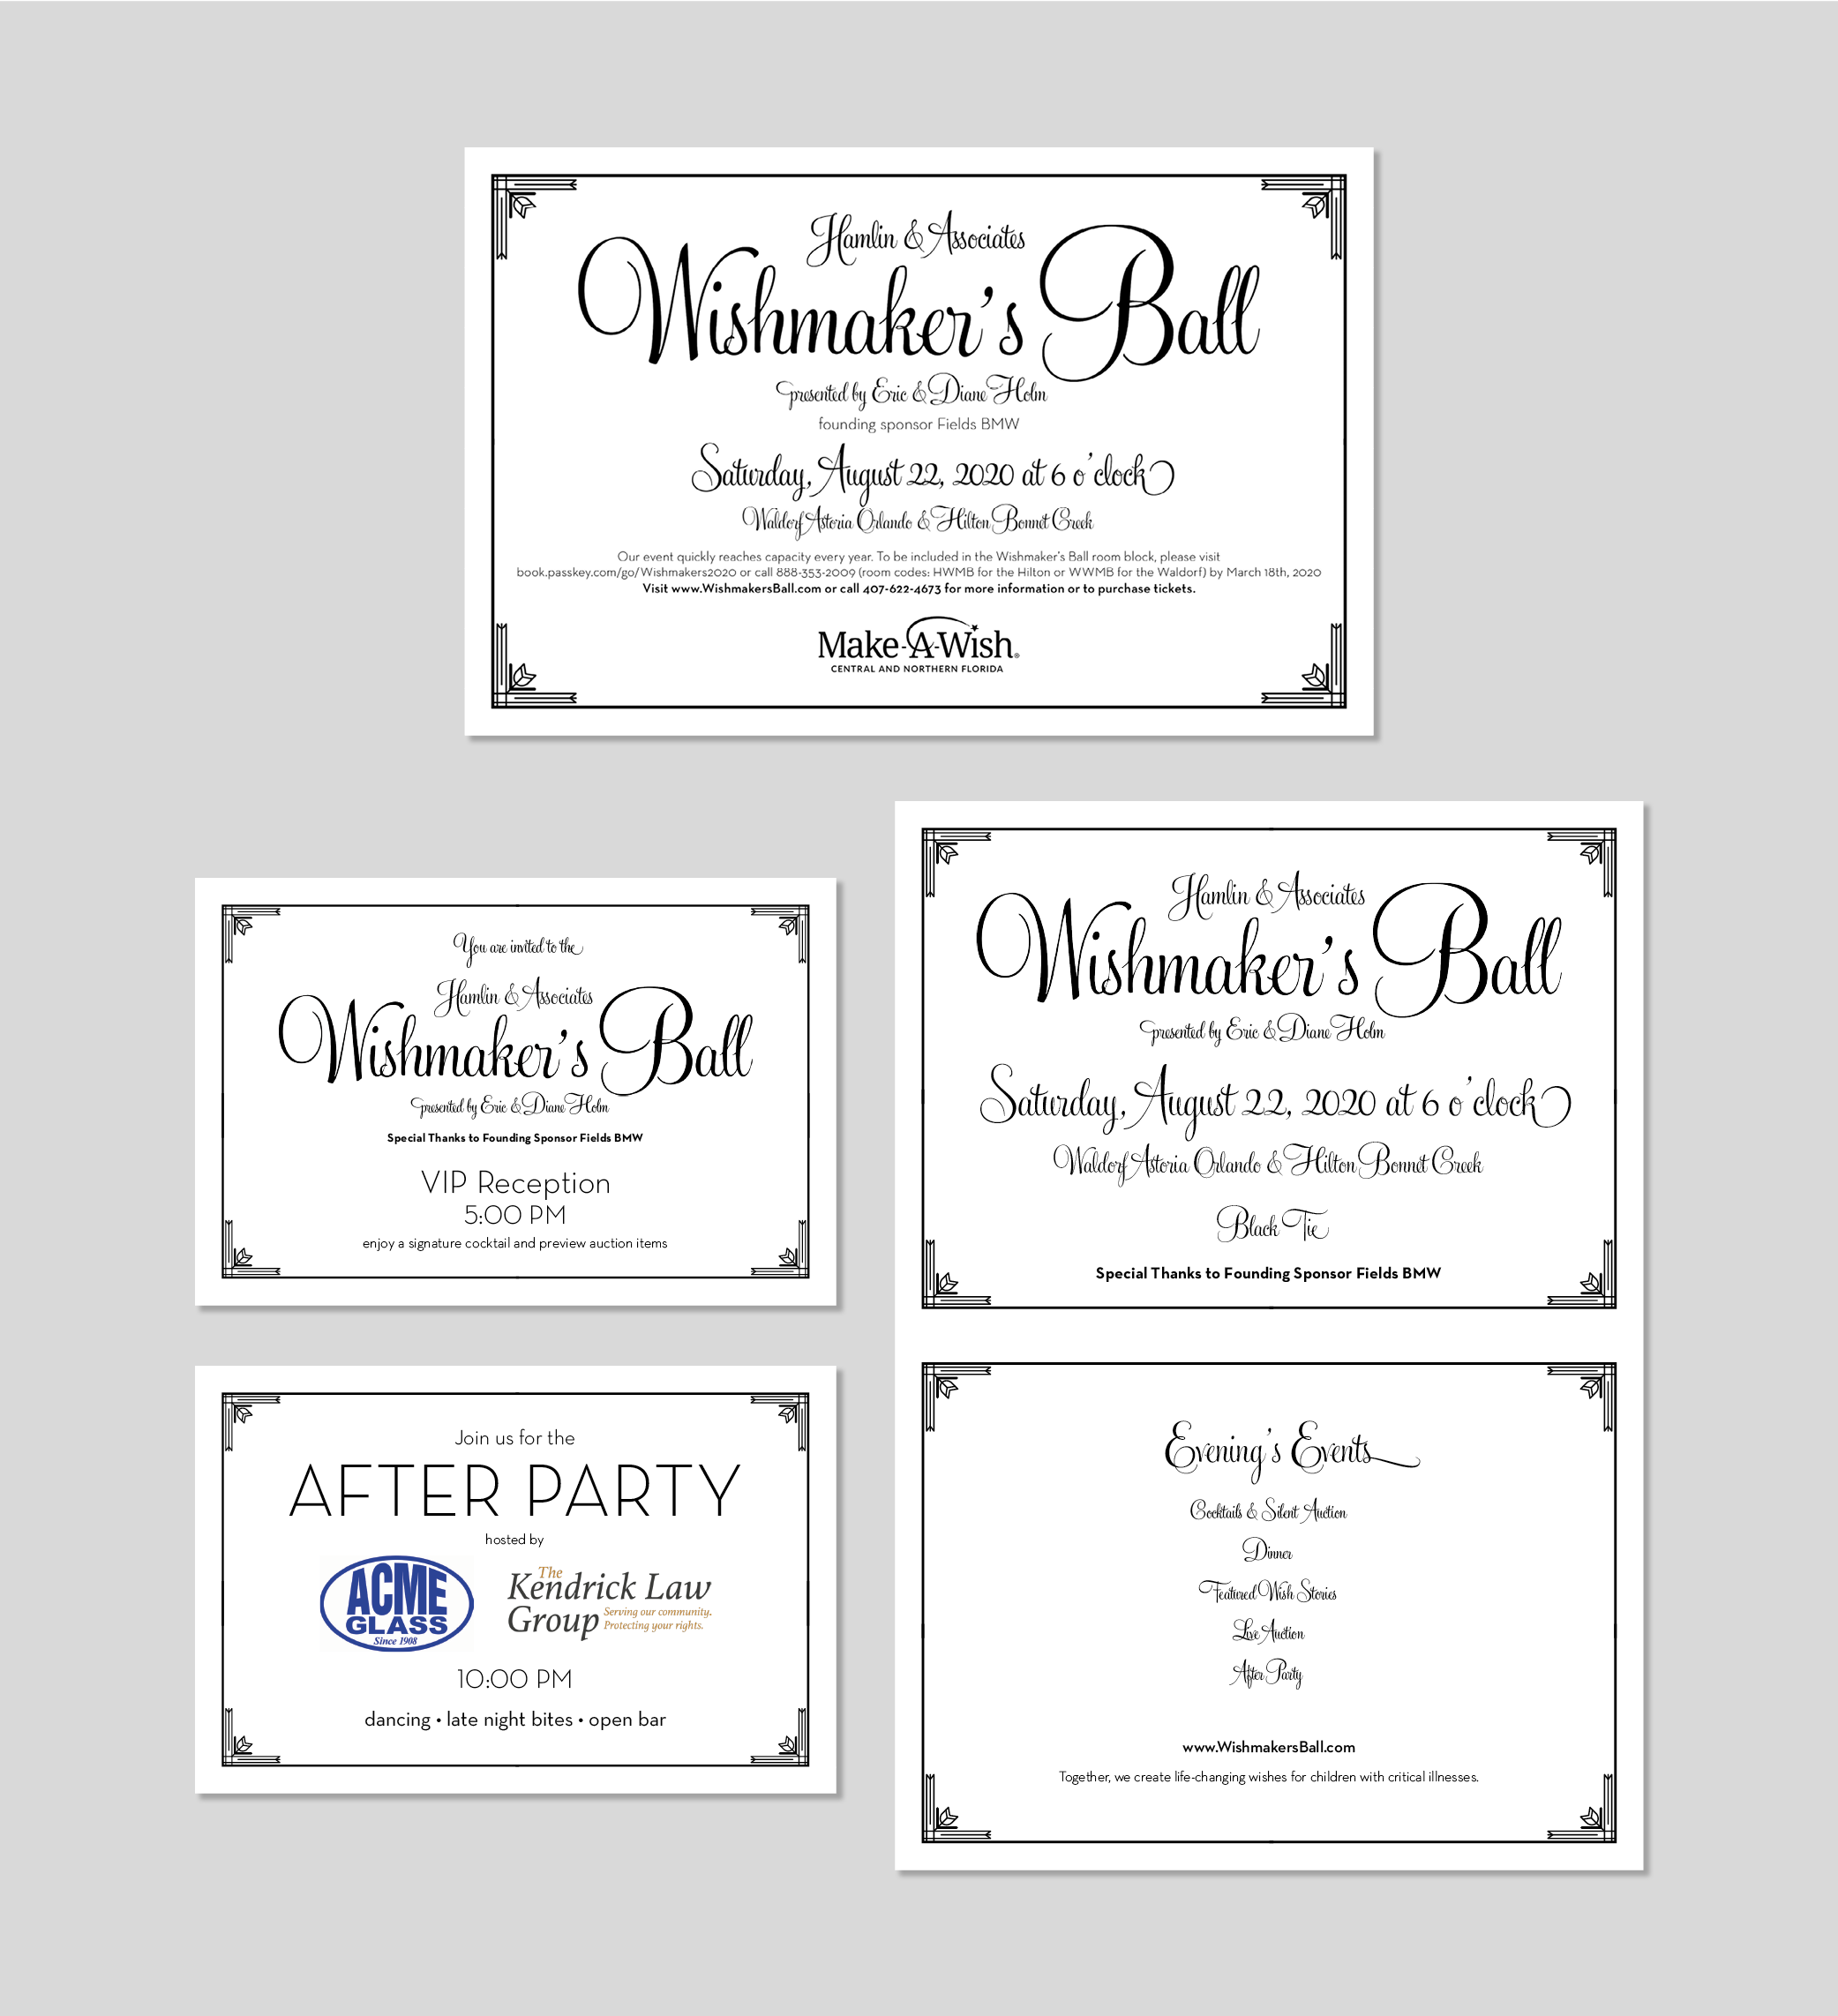 Invitation Suite for the Wishmaker's Ball which benefits Make A Wish of Central & Northern Florida